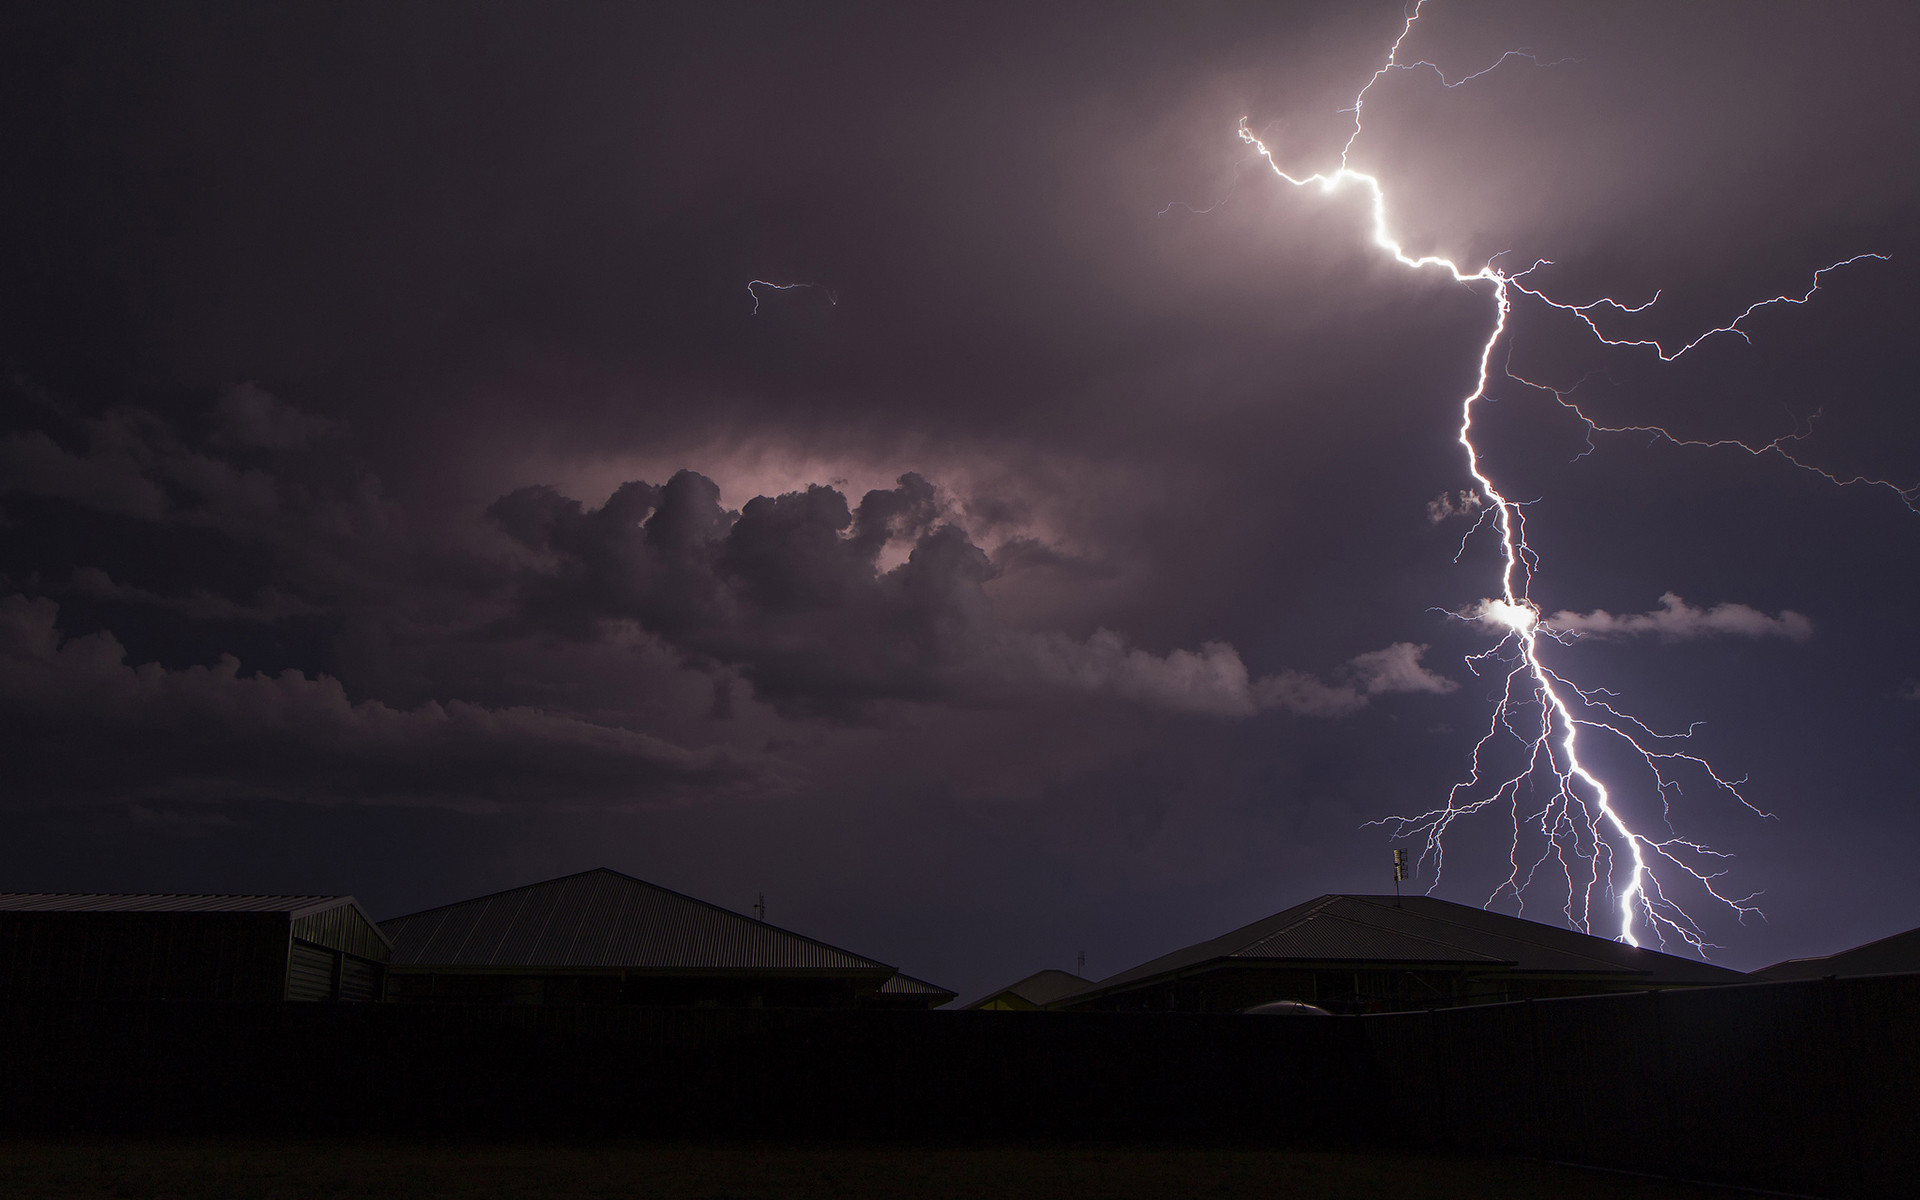 Storm lightning rain night wallpaper | 1920x1200 | 37998 ...